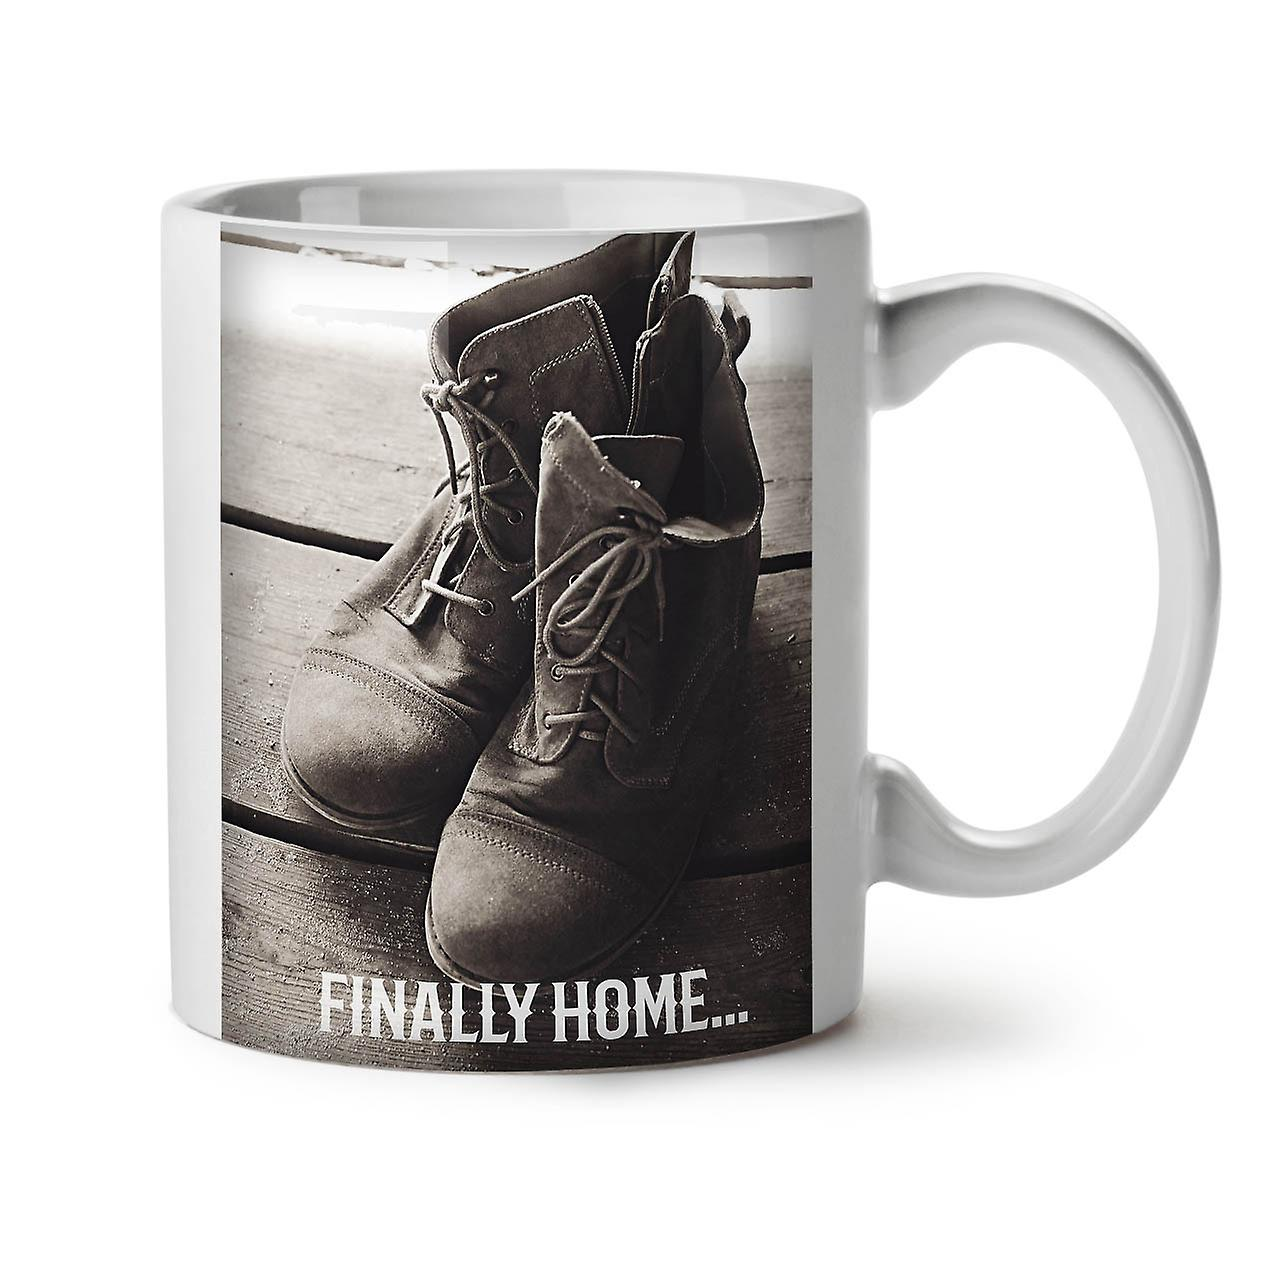 Ceramic Hippie New Home Shoe White Mug OzWellcoda Tea 11 Coffee N8wmPvnOy0